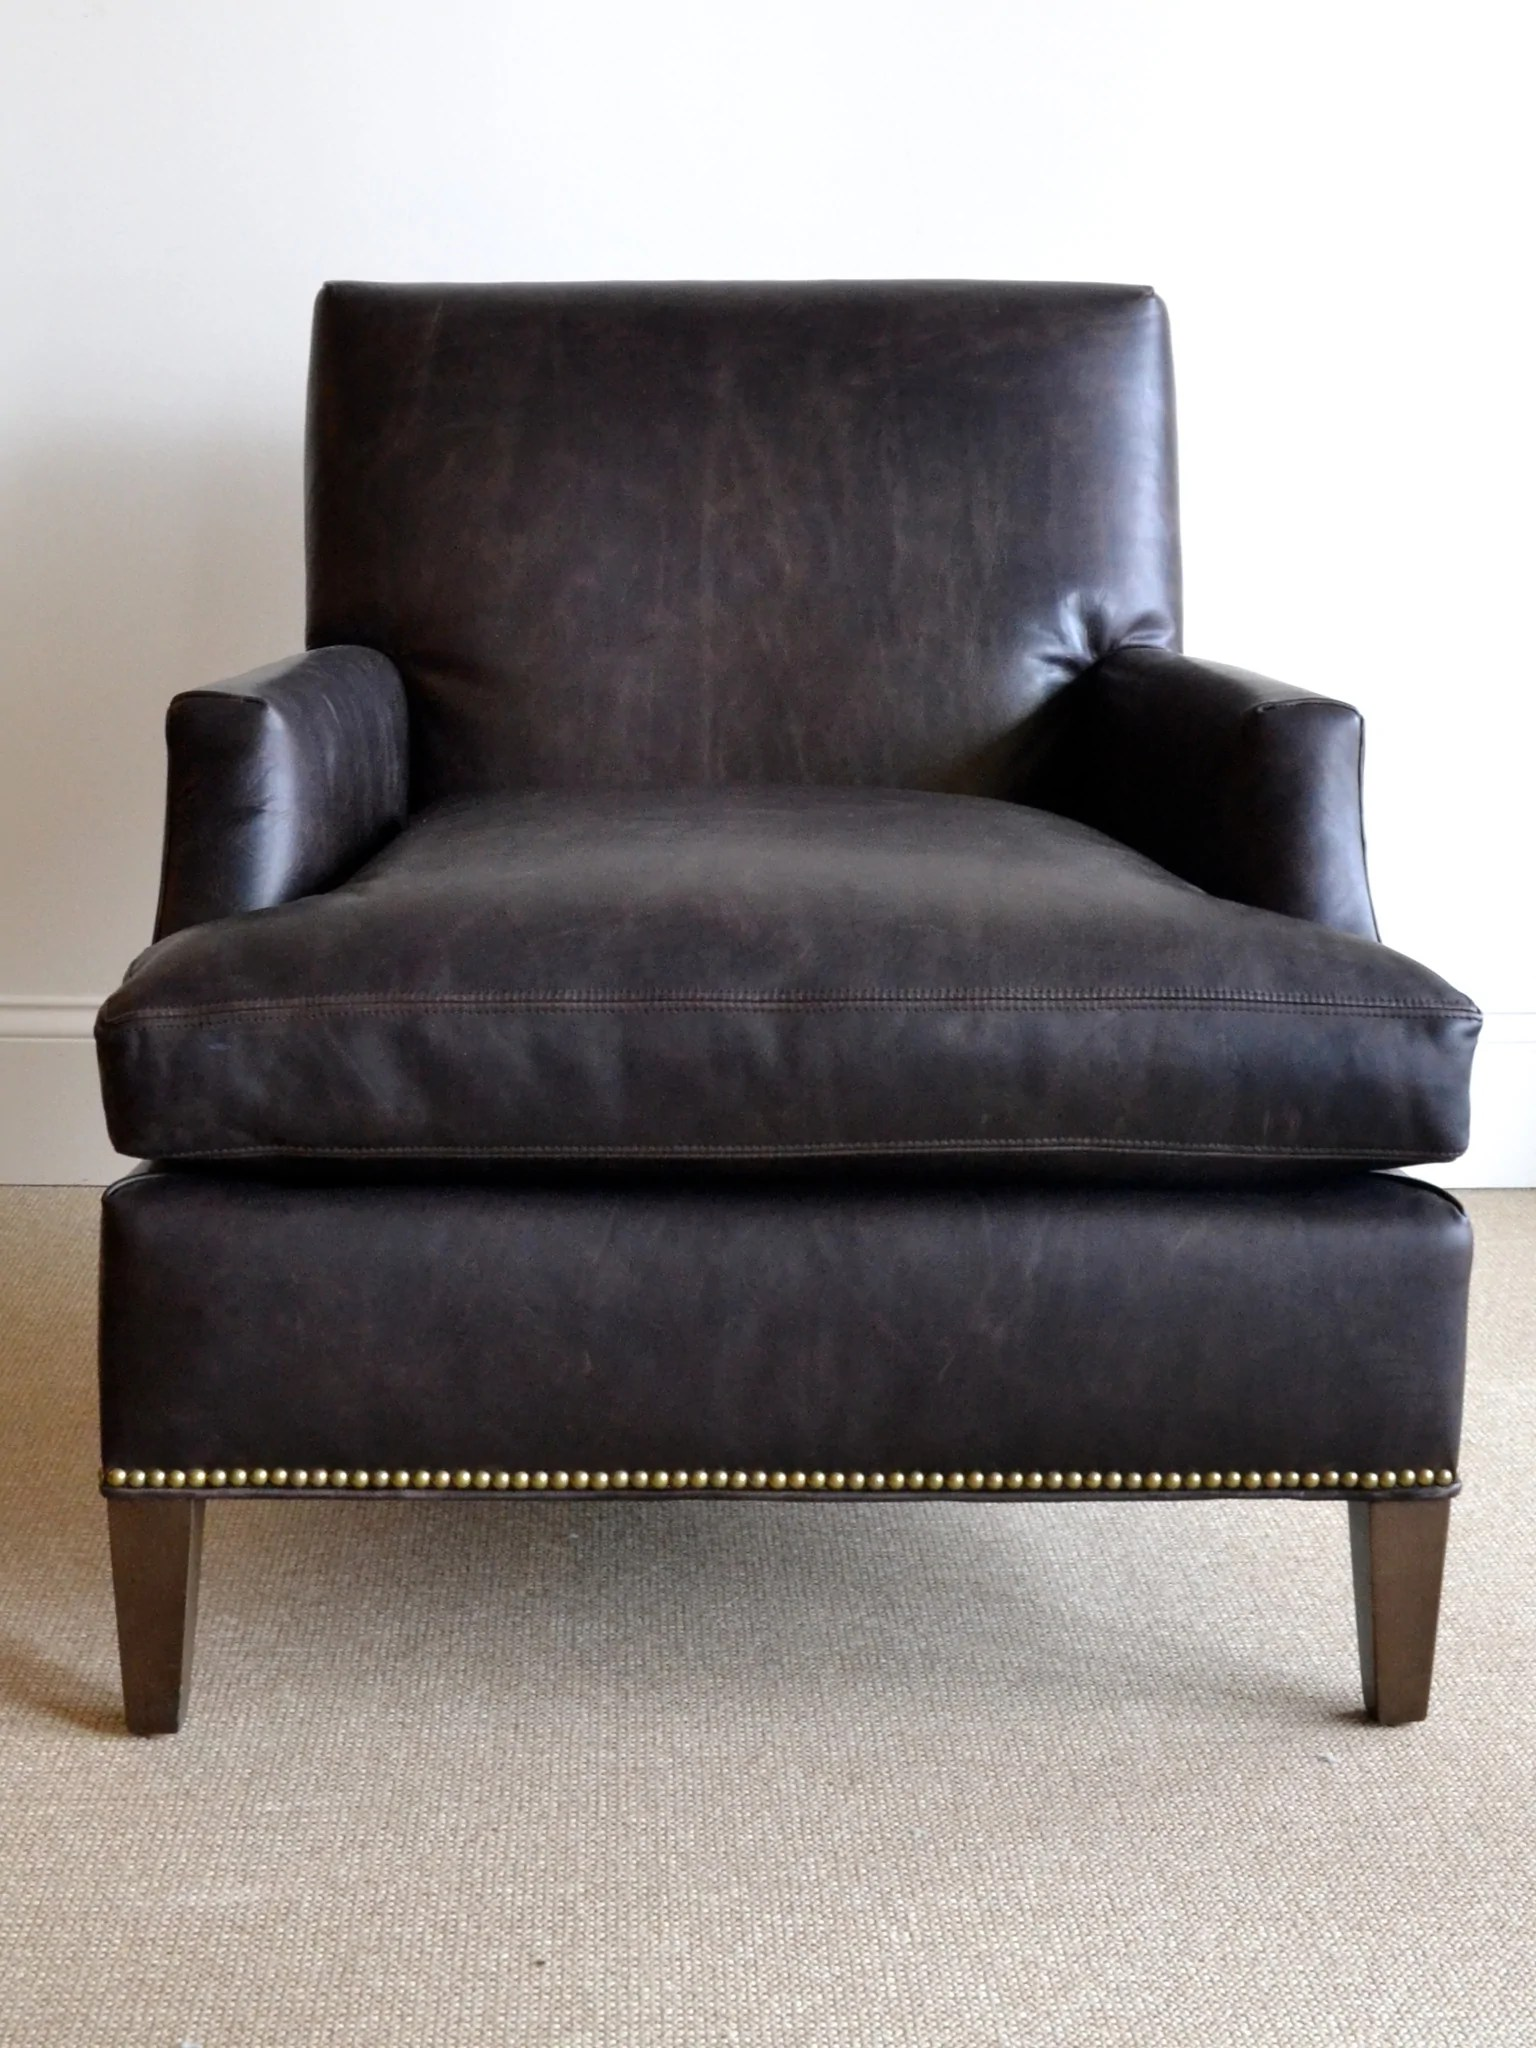 Leather Lounge Sackett Leather Lounge Chair Summerhouse